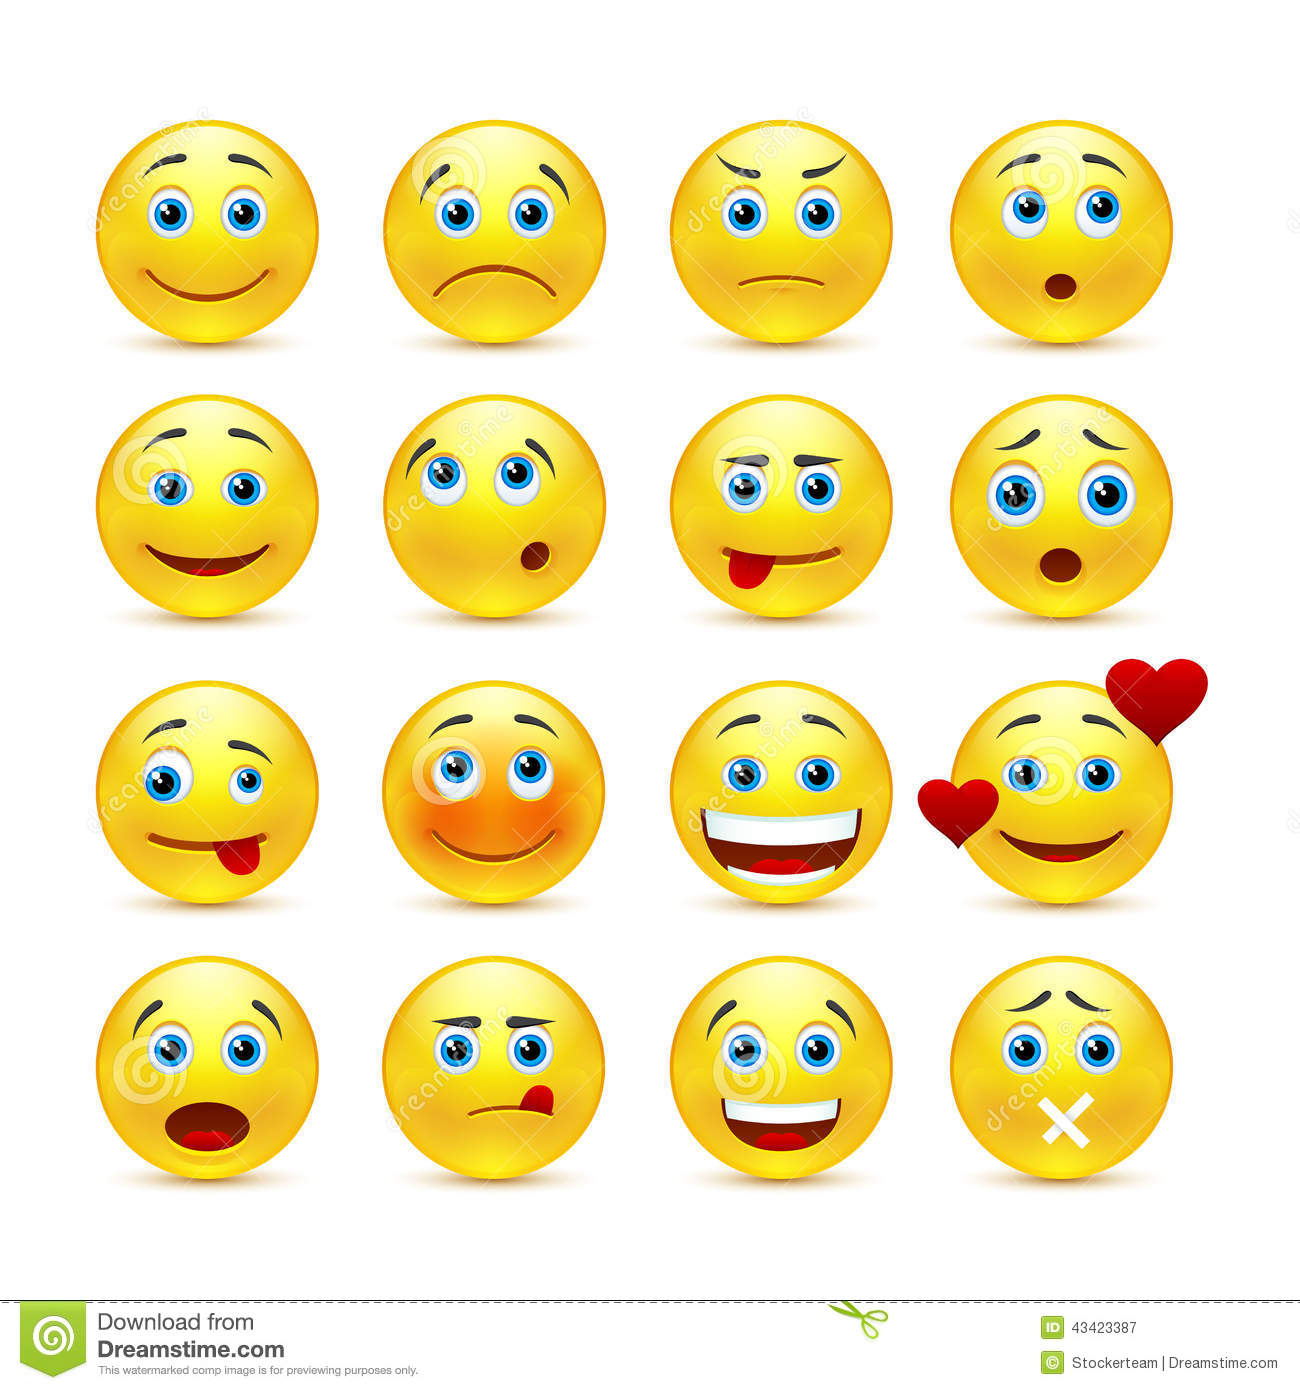 Stock Illustration Collection Smilies Different Emotions Vector Emotional Face Icons Image43423387 likewise Stock Photo Funny Bus Image26930550 besides Royalty Free Stock Image Blue Smiley Smiles Stock Image Human Emotion Smile Image32503976 besides Minions Color Pages 4 besides Cartoon Letter O Birthday 180682. on happy cartoon mouth